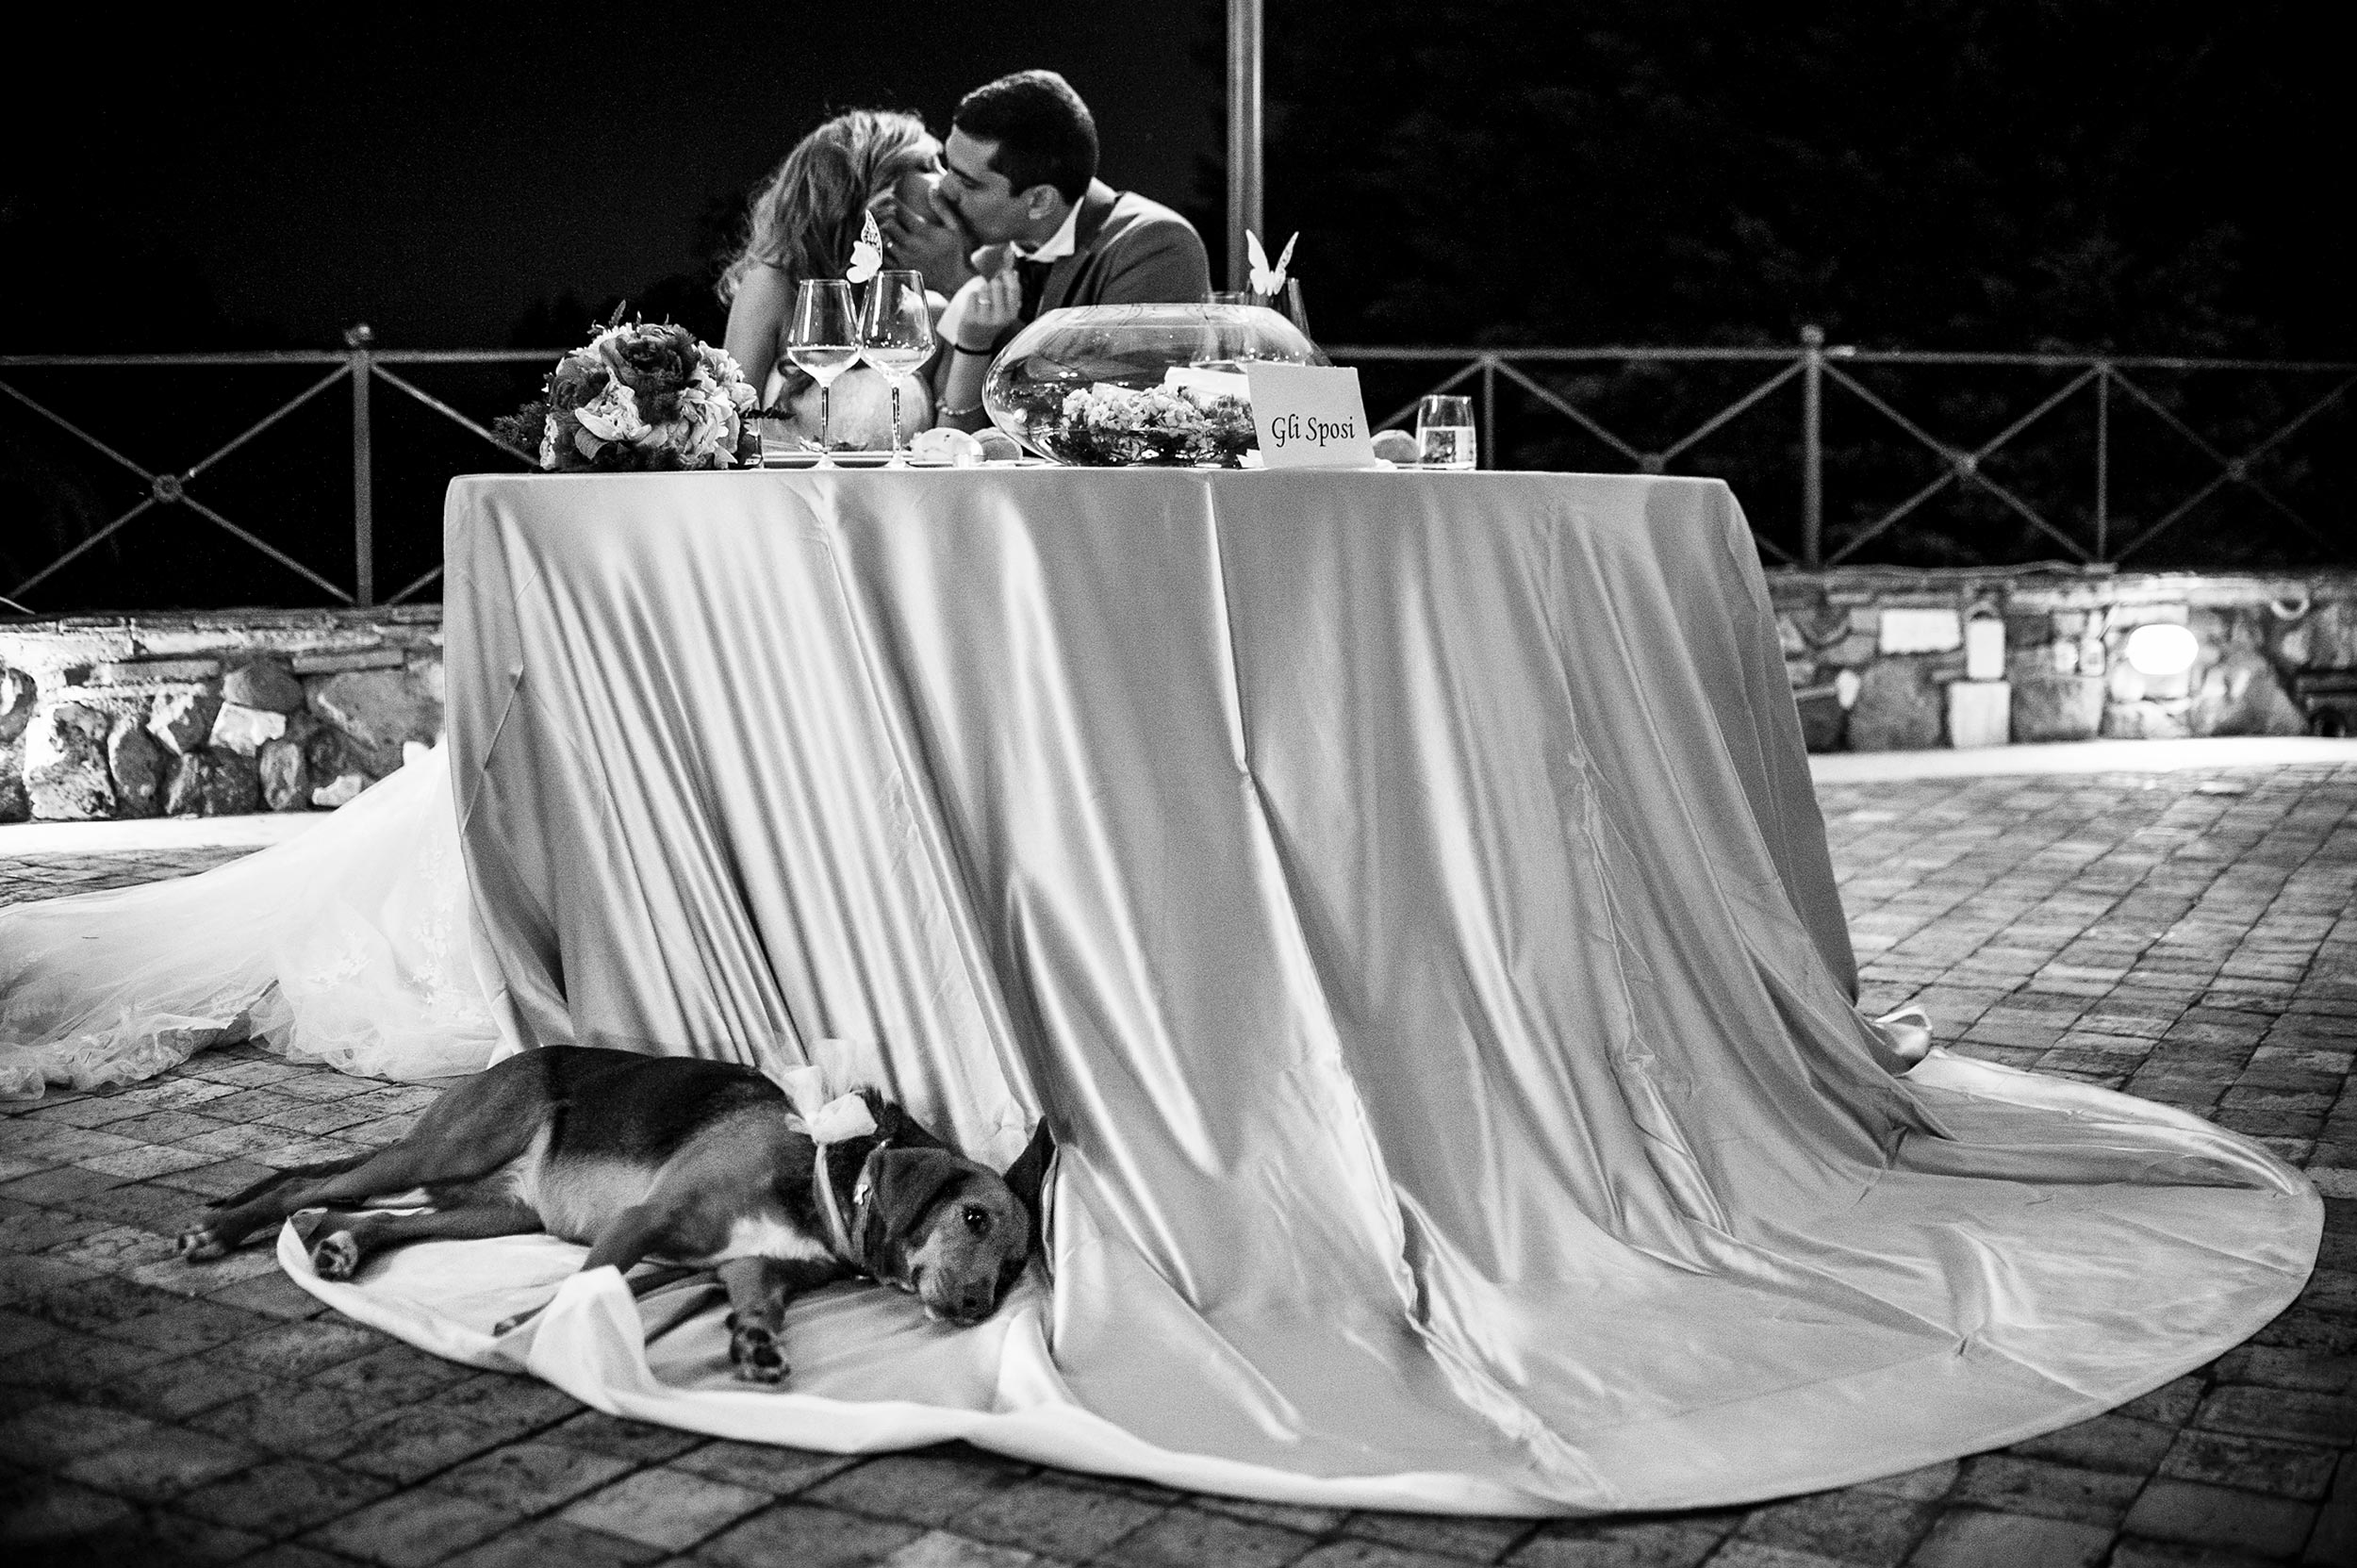 bride-and-grooms-dog-rests-under-nuptial-table-at-reception-black-and-white-wedding-photography.jpg